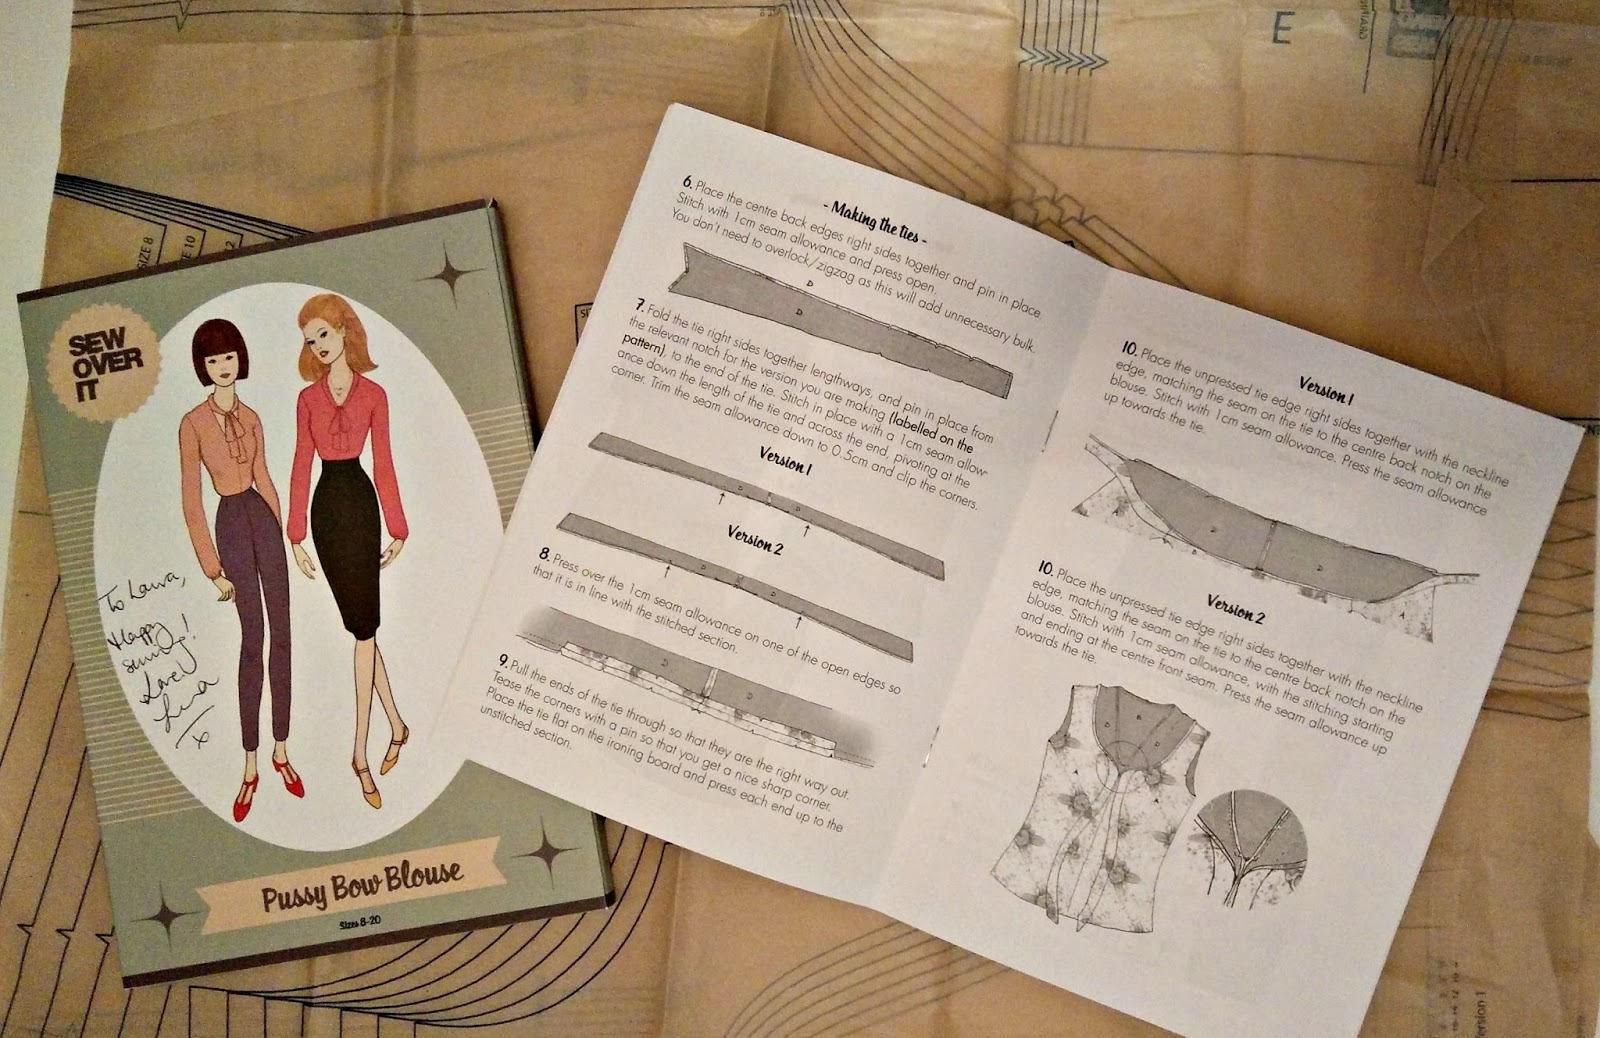 Sew Over It Pussy Bow Blouse Pattern and Instructions